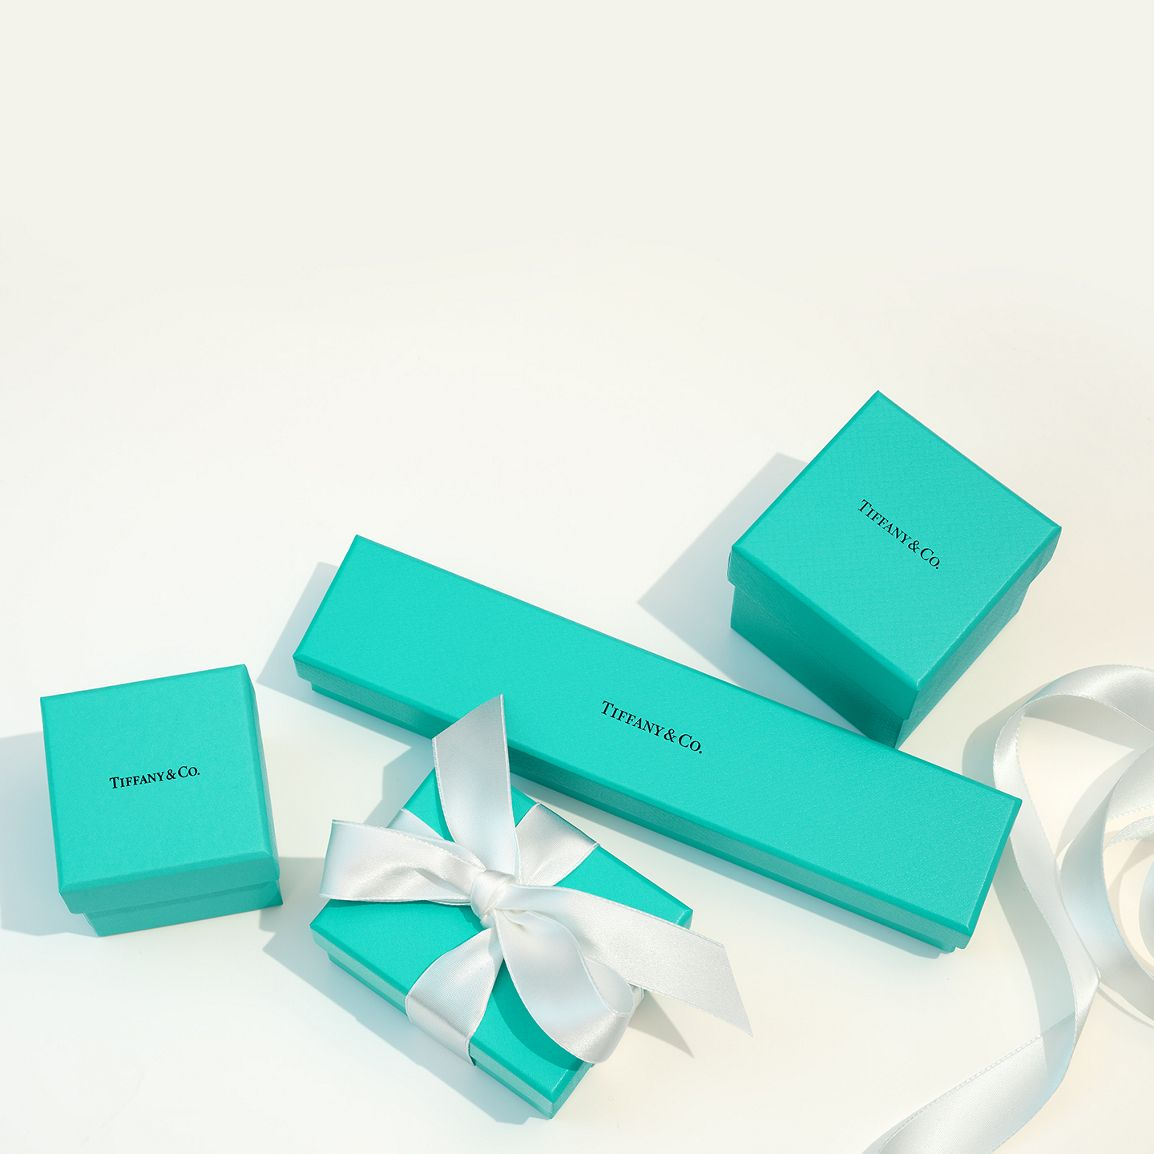 75b0e0d3469 Luxury Gifts | Present The Iconic Blue Box | Tiffany & Co.